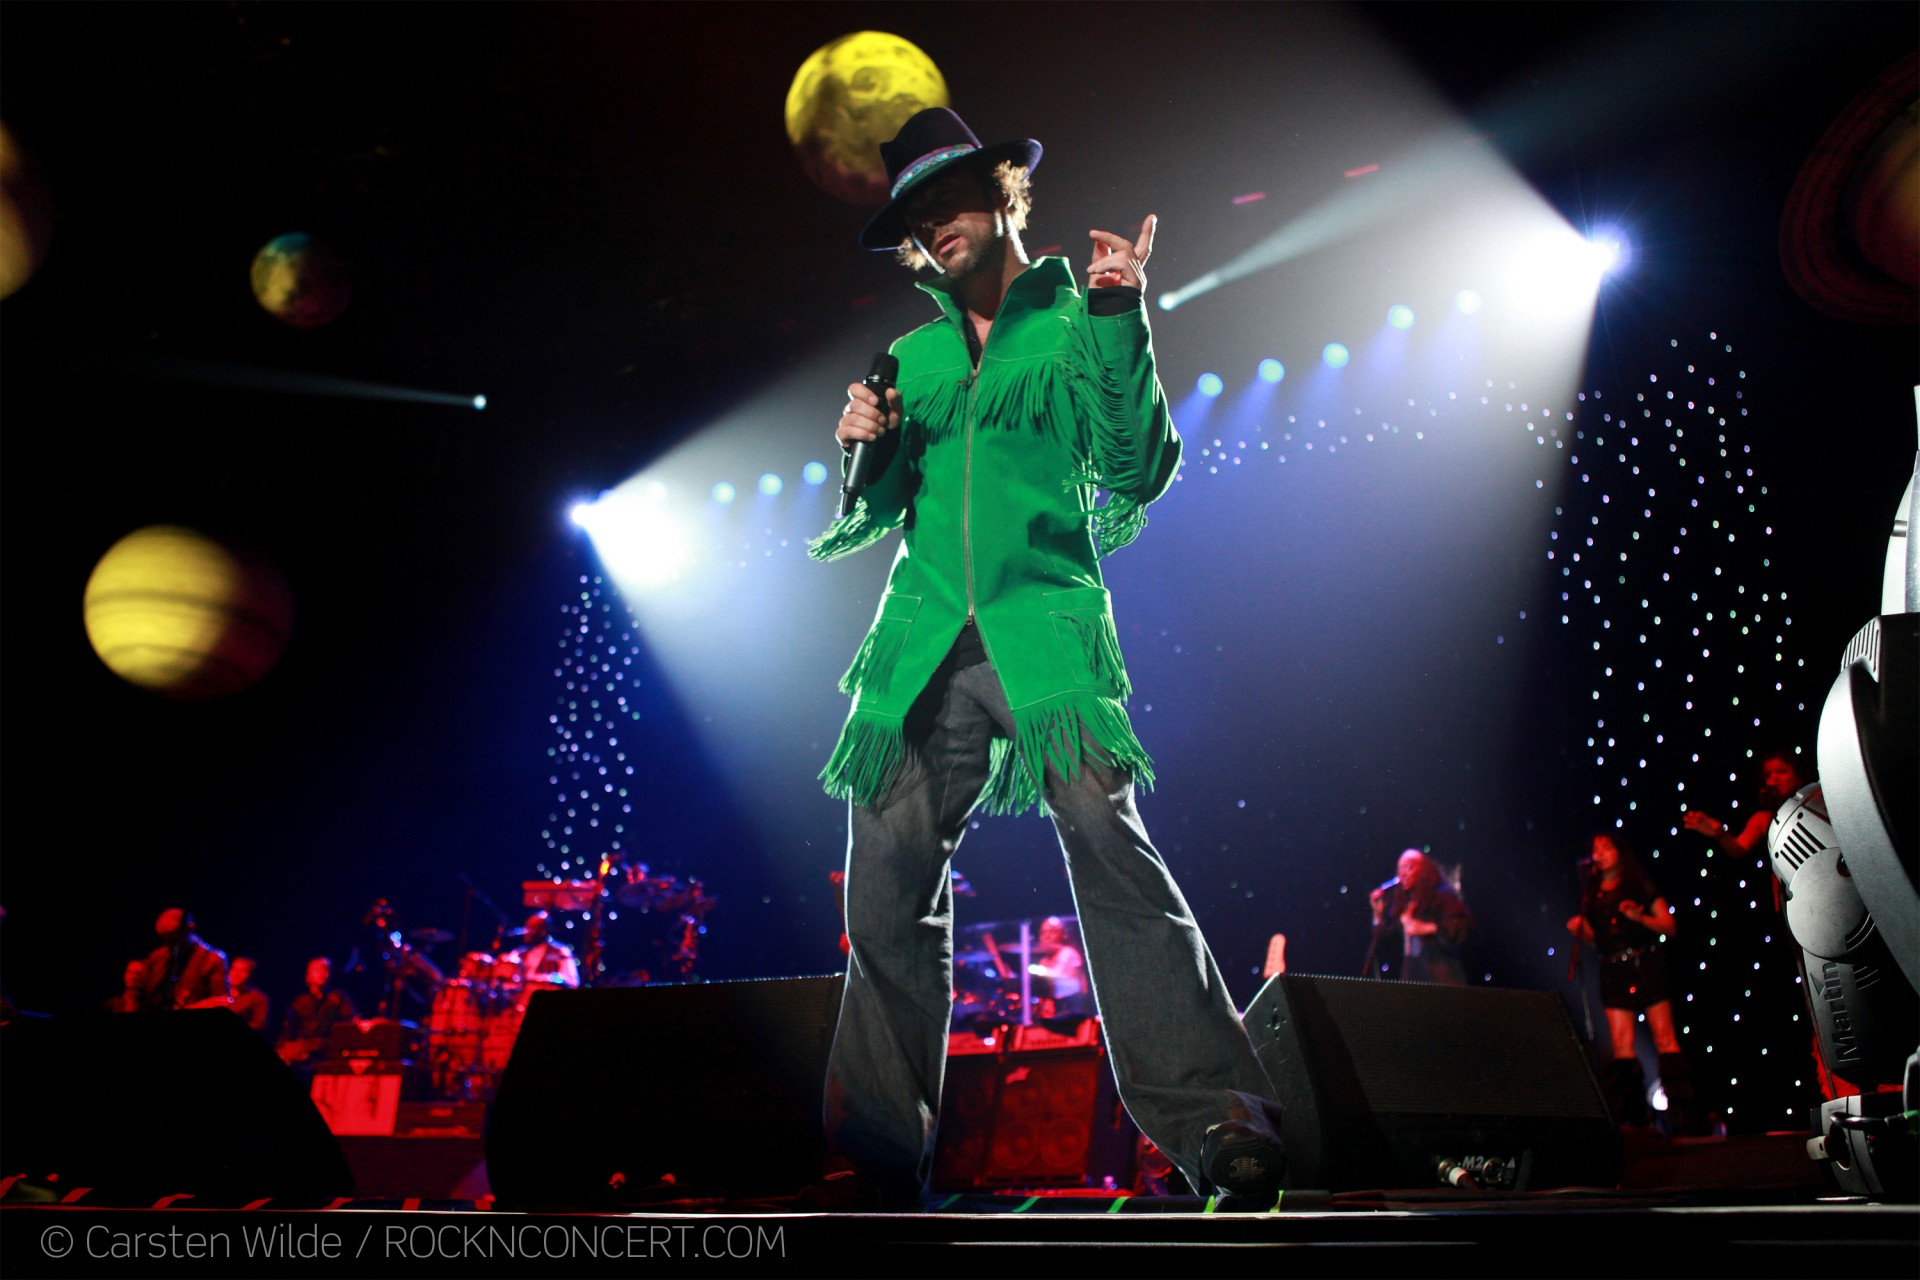 Jamiroquai - Konzert in Paris